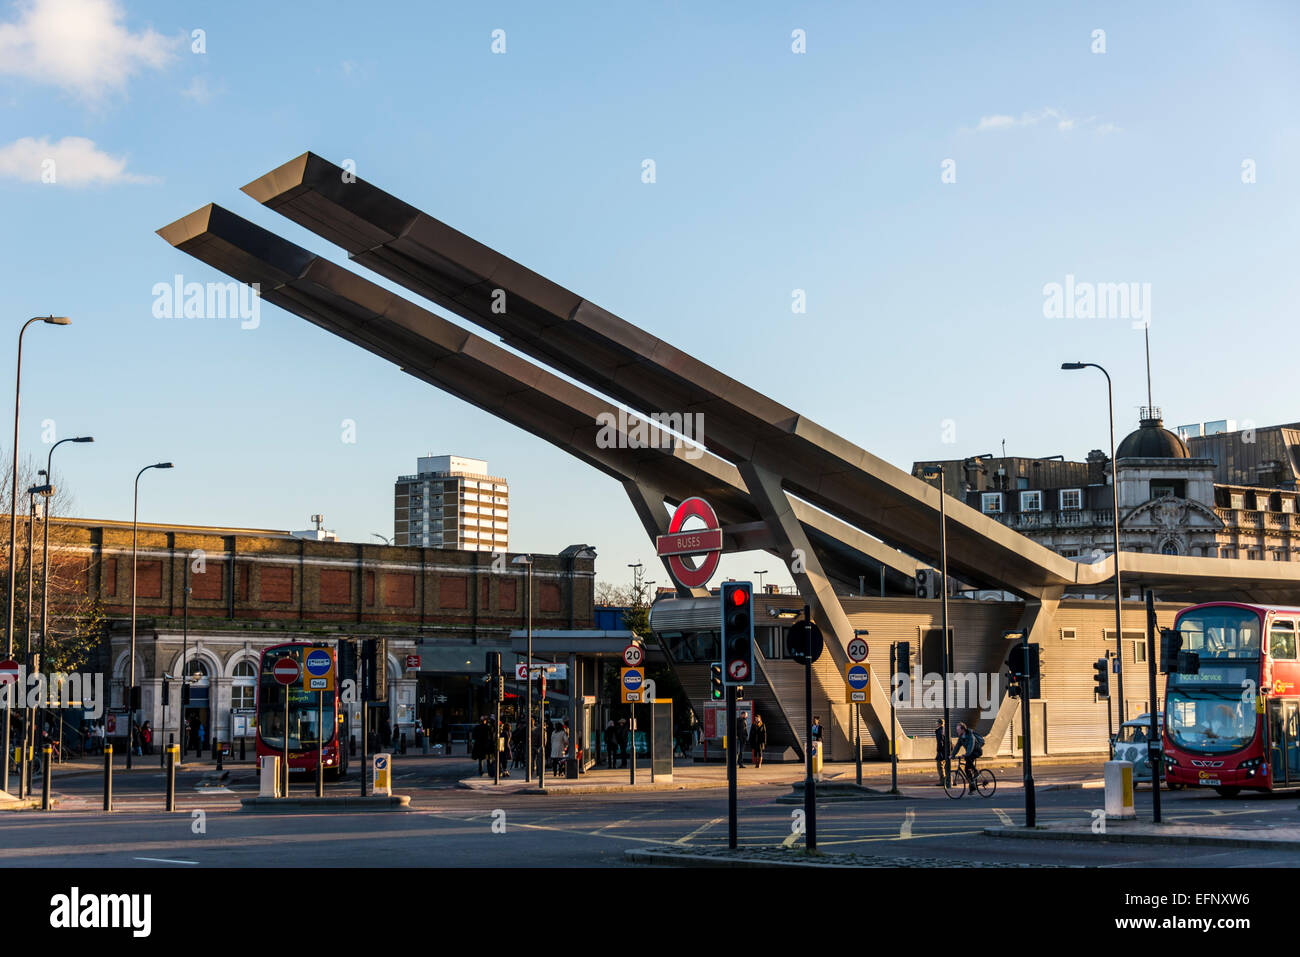 Vauxhall Bus Station, London is in the Borough of Lambeth and is maintained by Transport for London - Stock Image